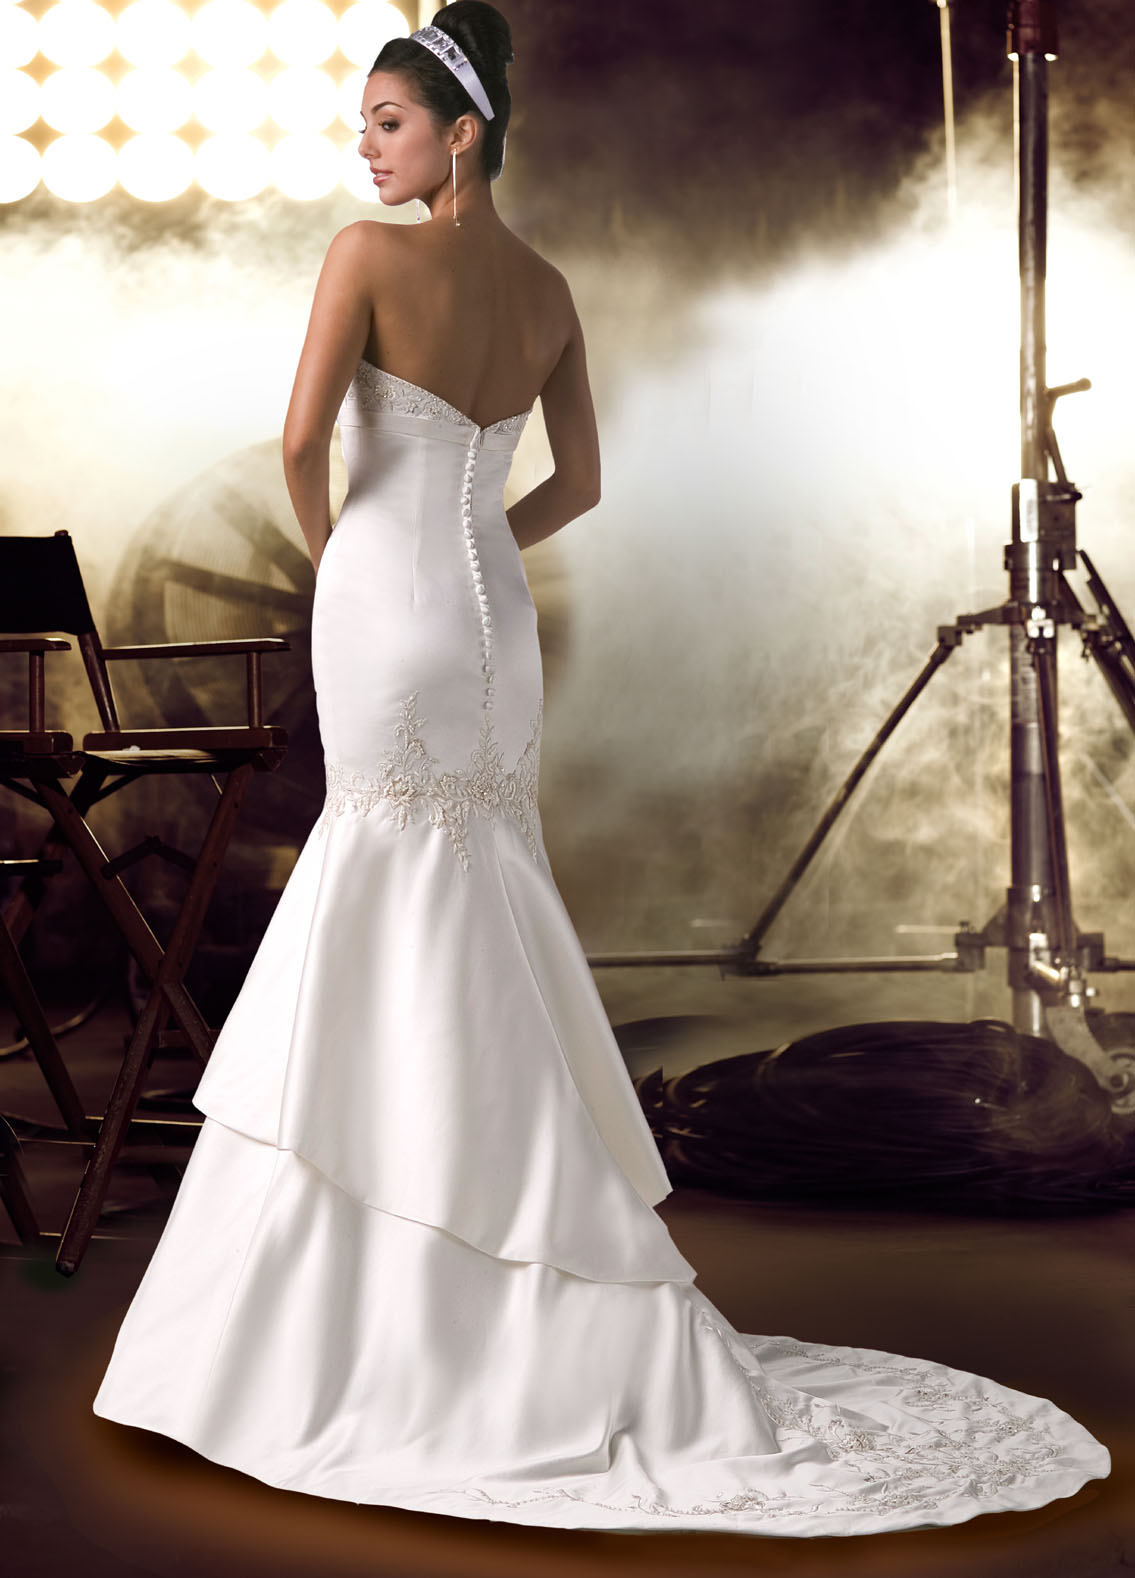 The Dream Wedding Inspirations: vera wang mermaid wedding dresses